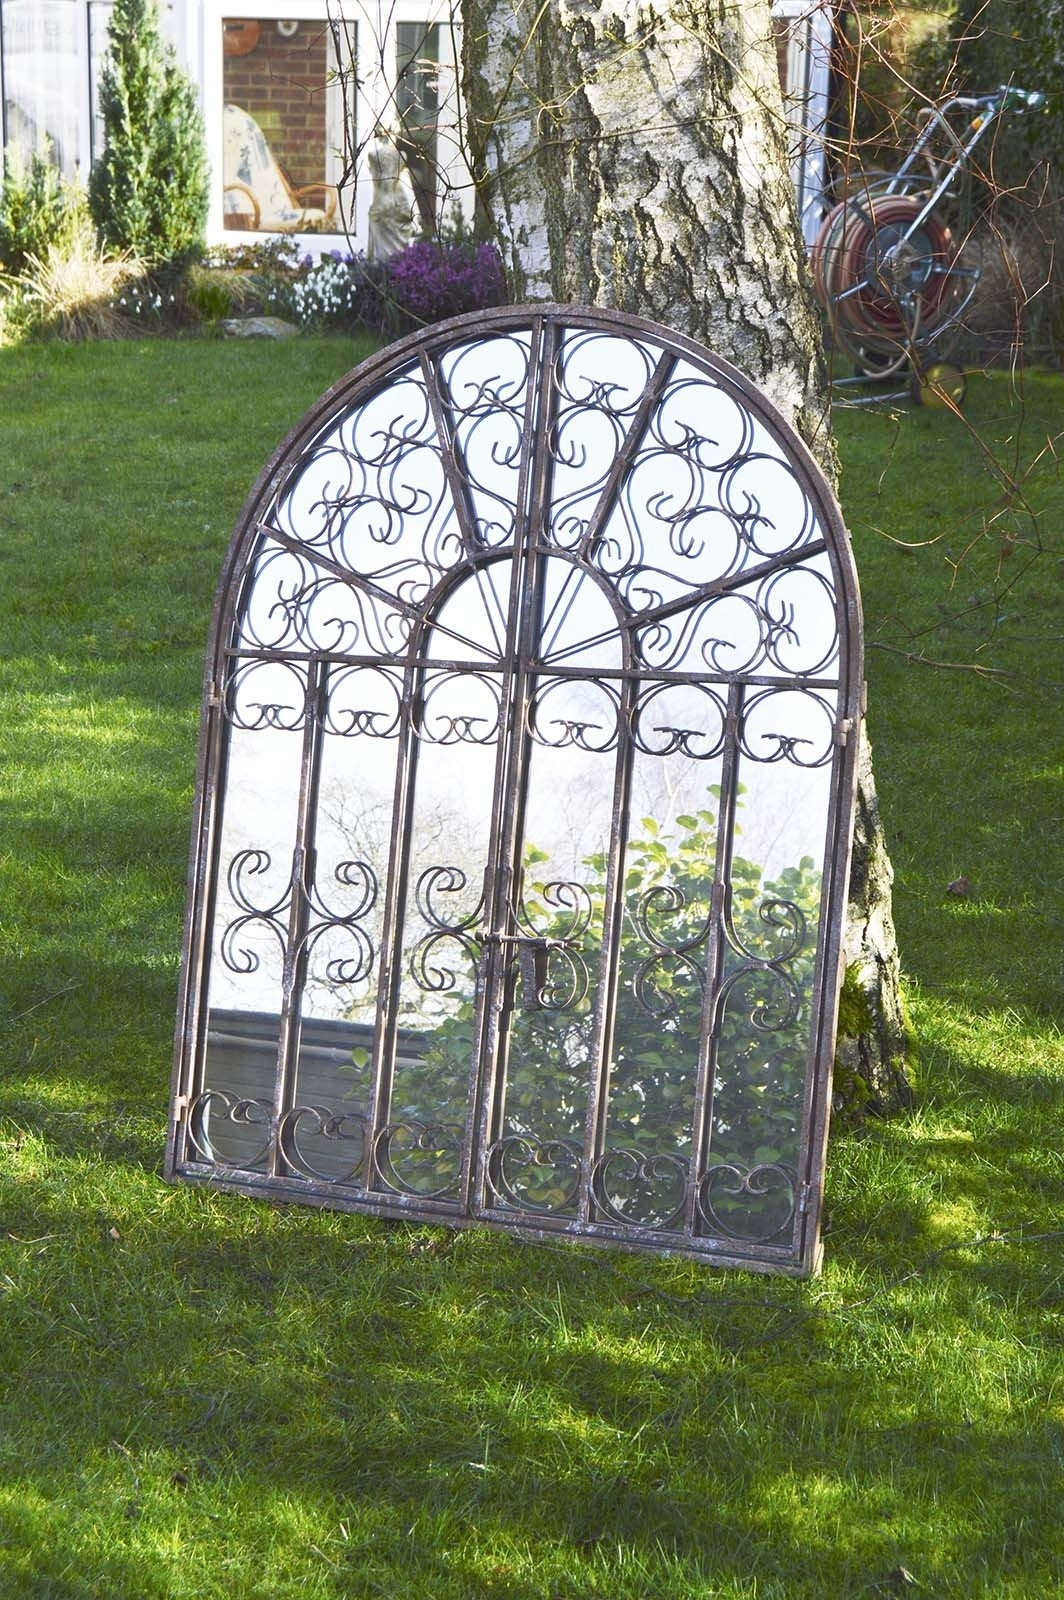 Large Scroll Outdoor Garden Ornate Shab Chic Big Wall Mirror Throughout Outside Garden Mirrors (View 13 of 14)